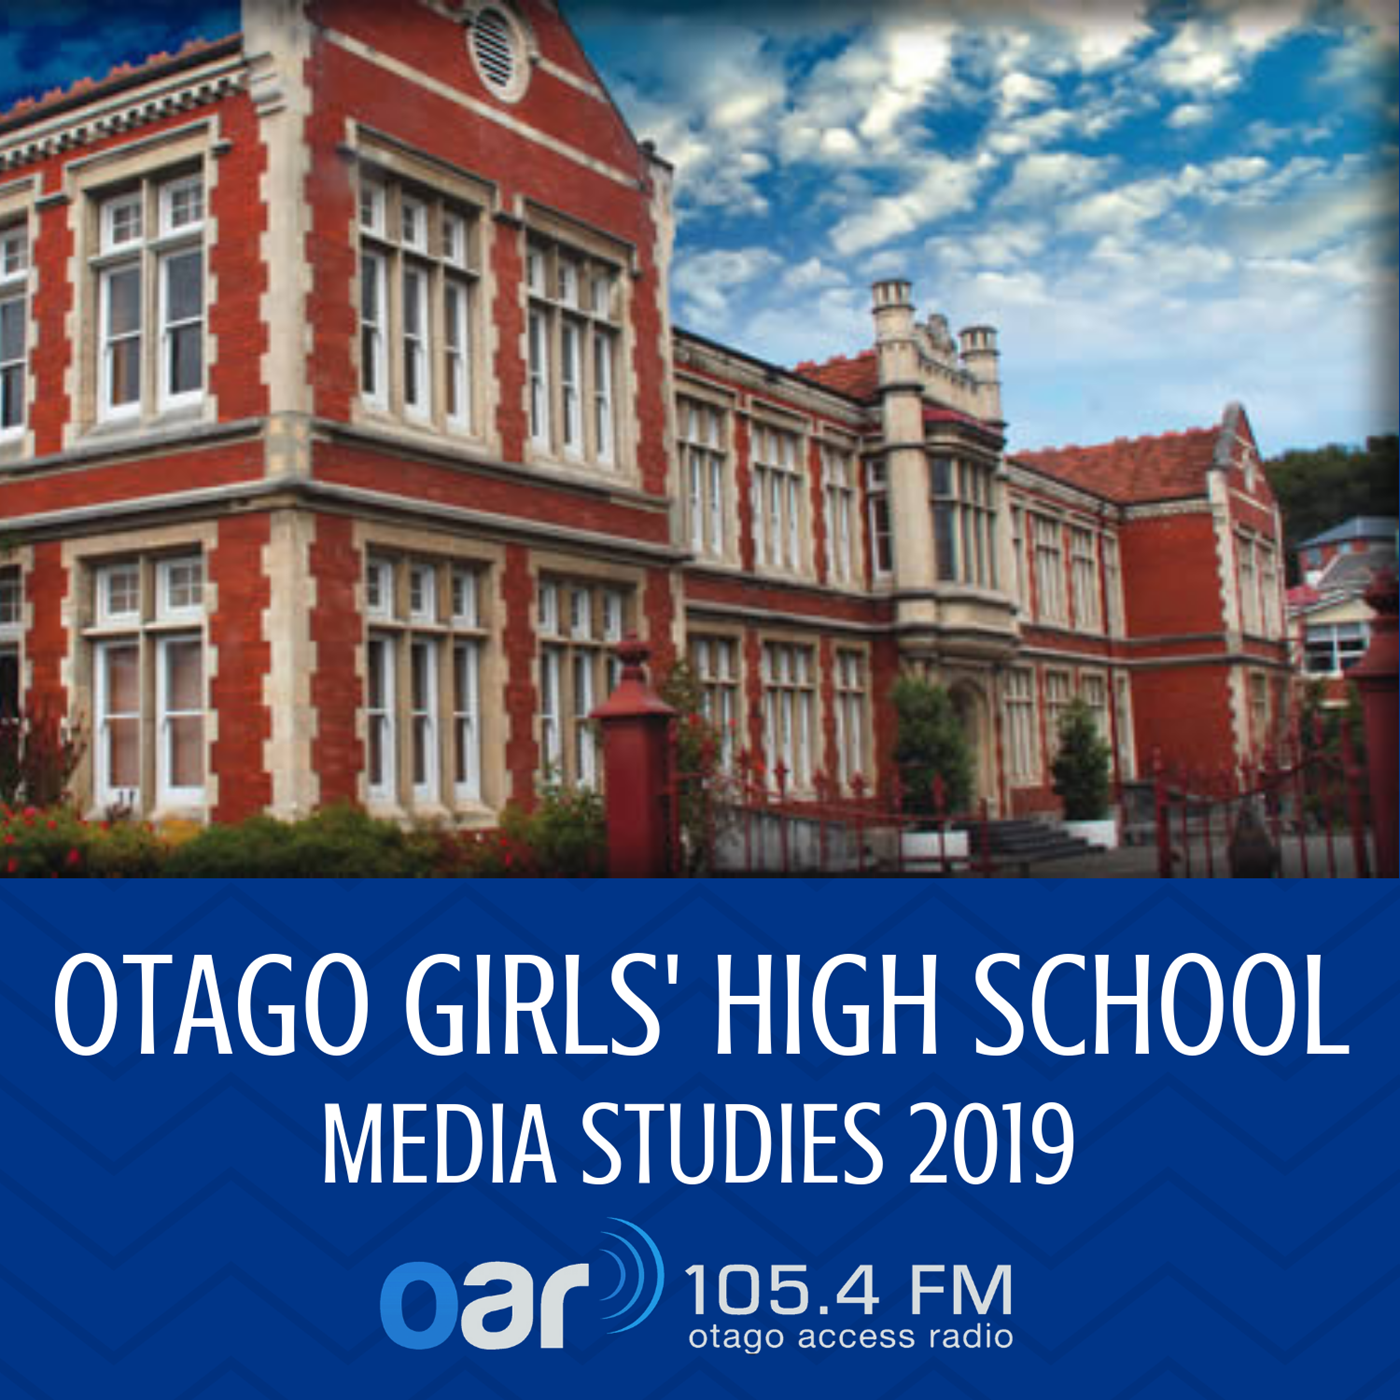 Otago Girls' High School 2019